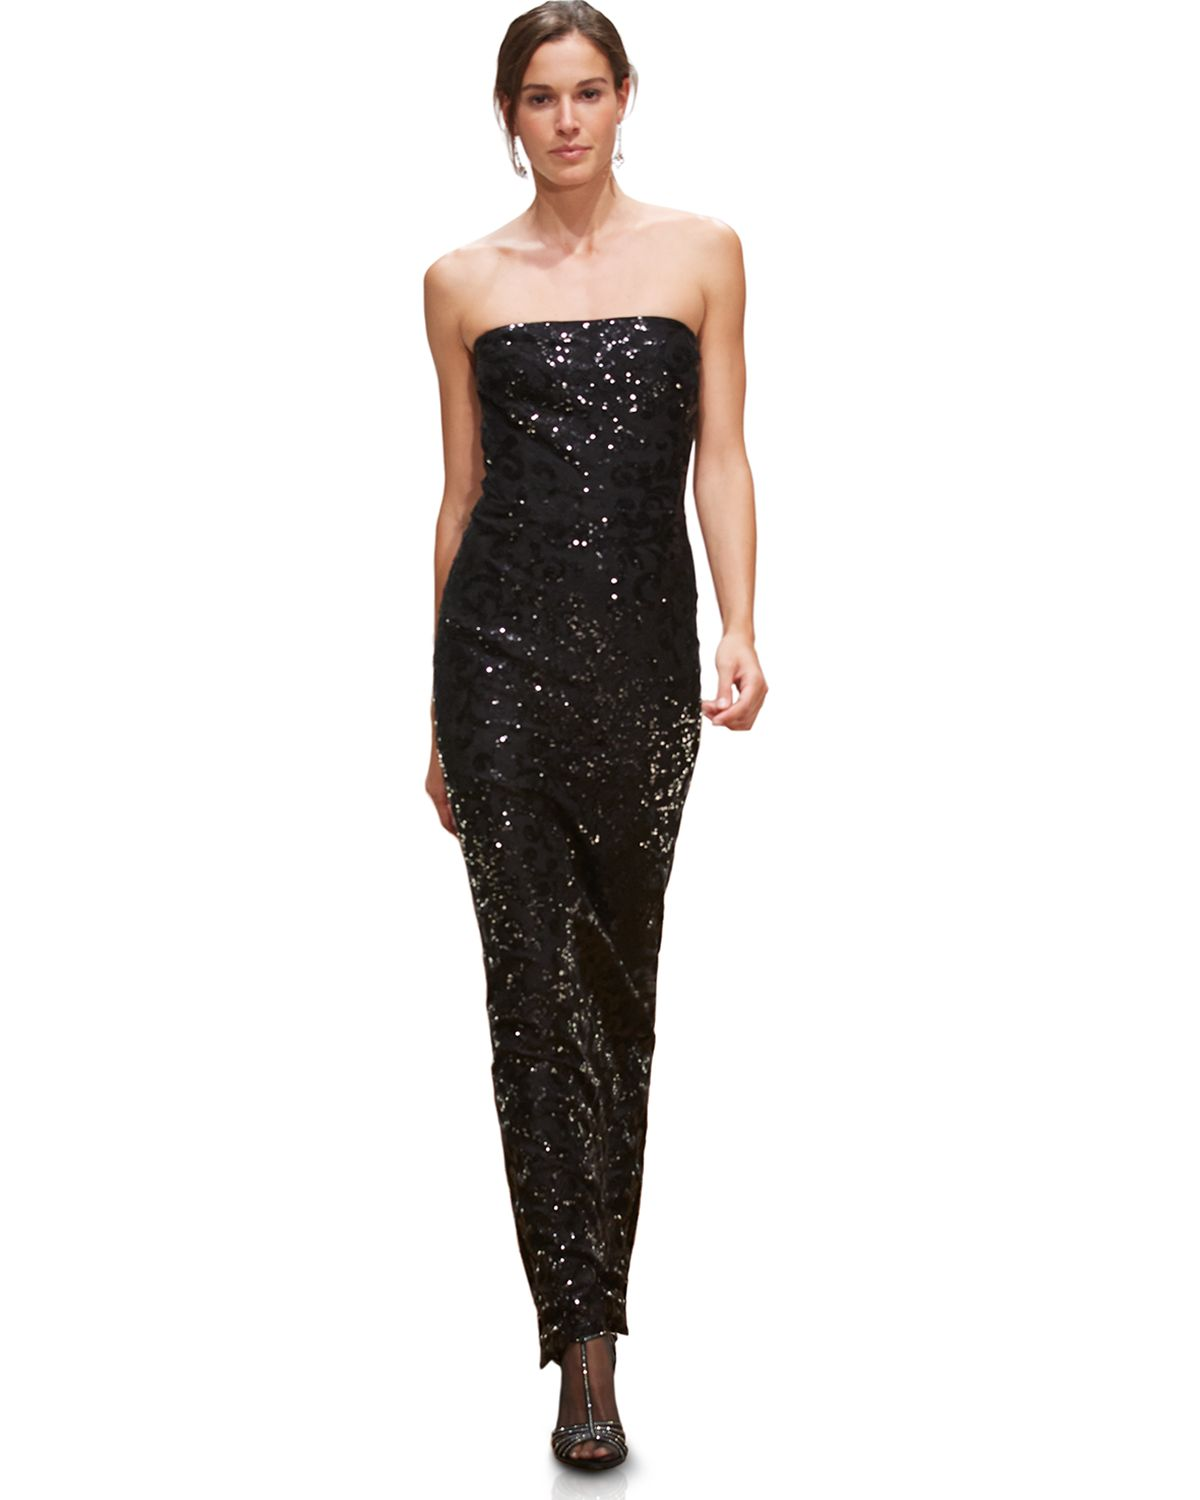 Lauren by ralph lauren Strapless Sequin Lace Gown in Black | Lyst